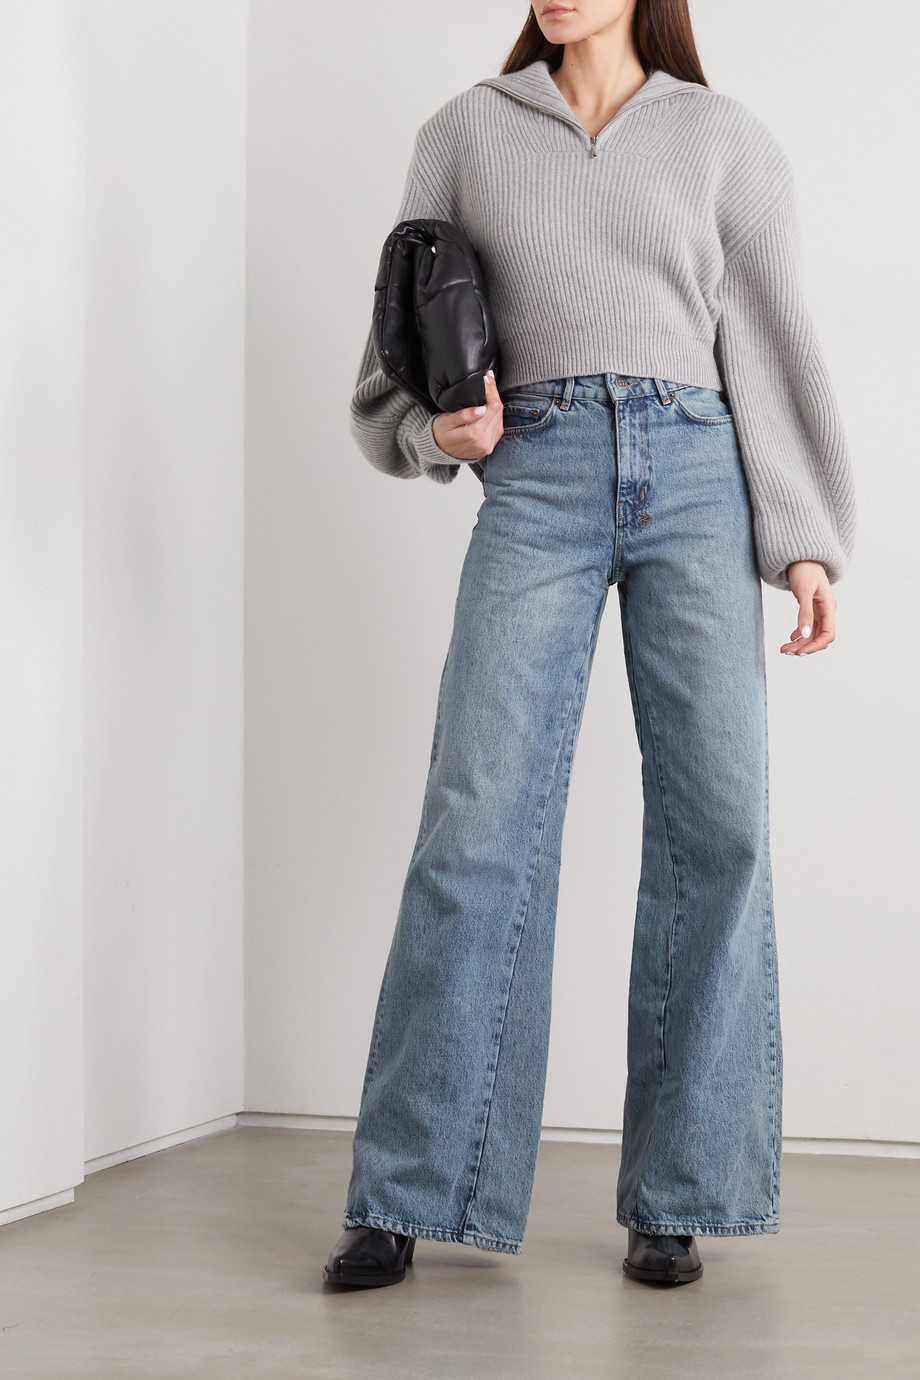 KSUBI Kicker Jinx high-rise wide-leg jeans